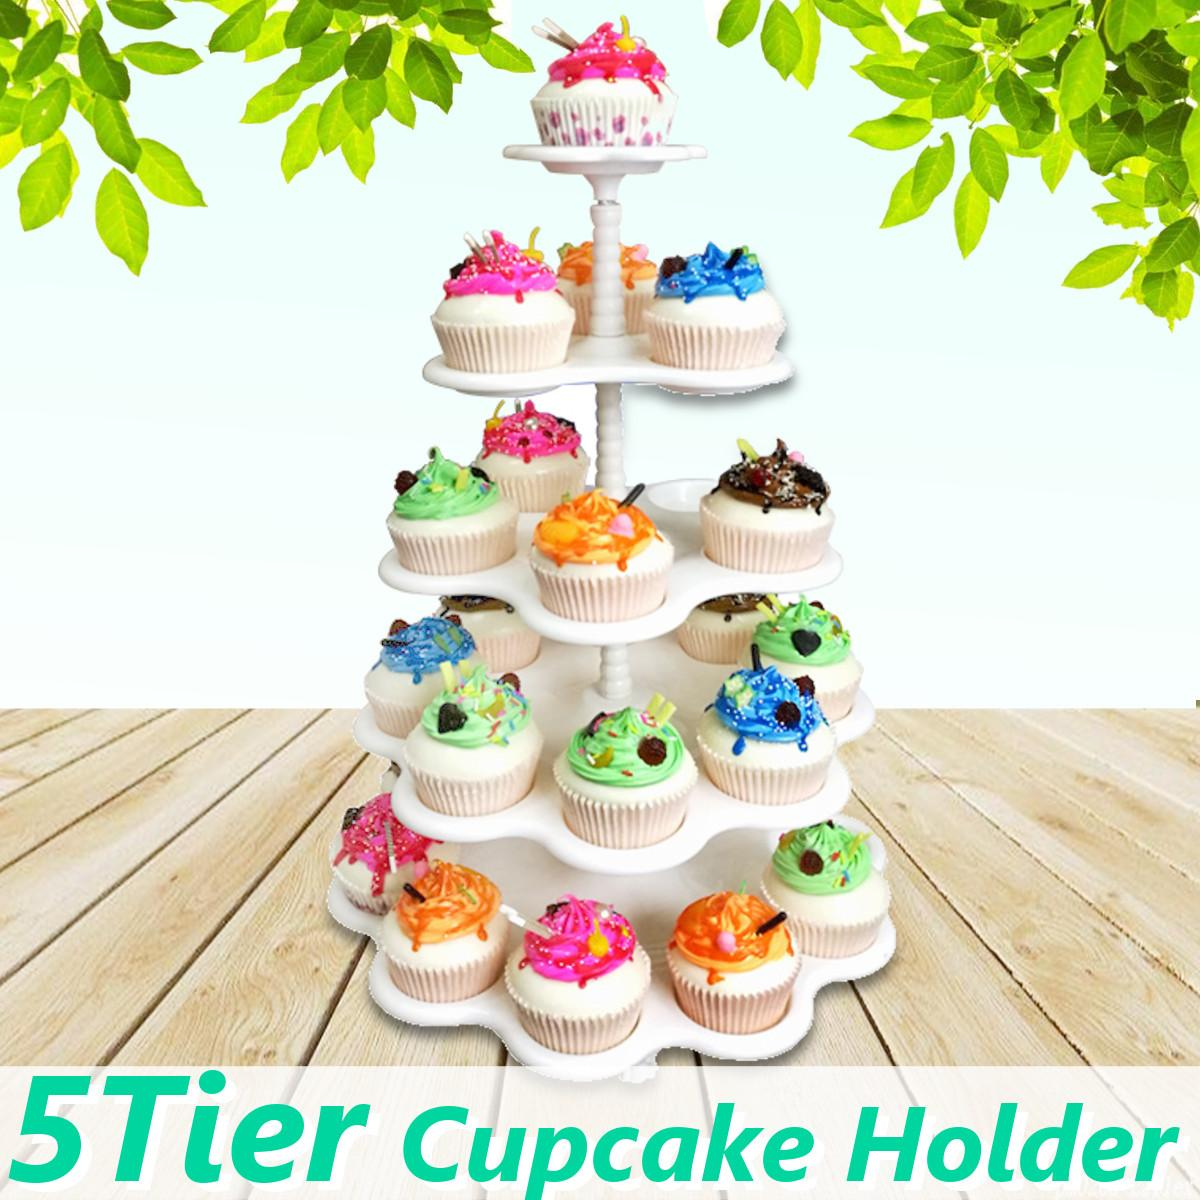 2019 Birthday Party 5 Tiers Cupcake Holder Cake Stand White Dessert Display Decorating Tools Wedding Decoration Supplies From Haolinhome